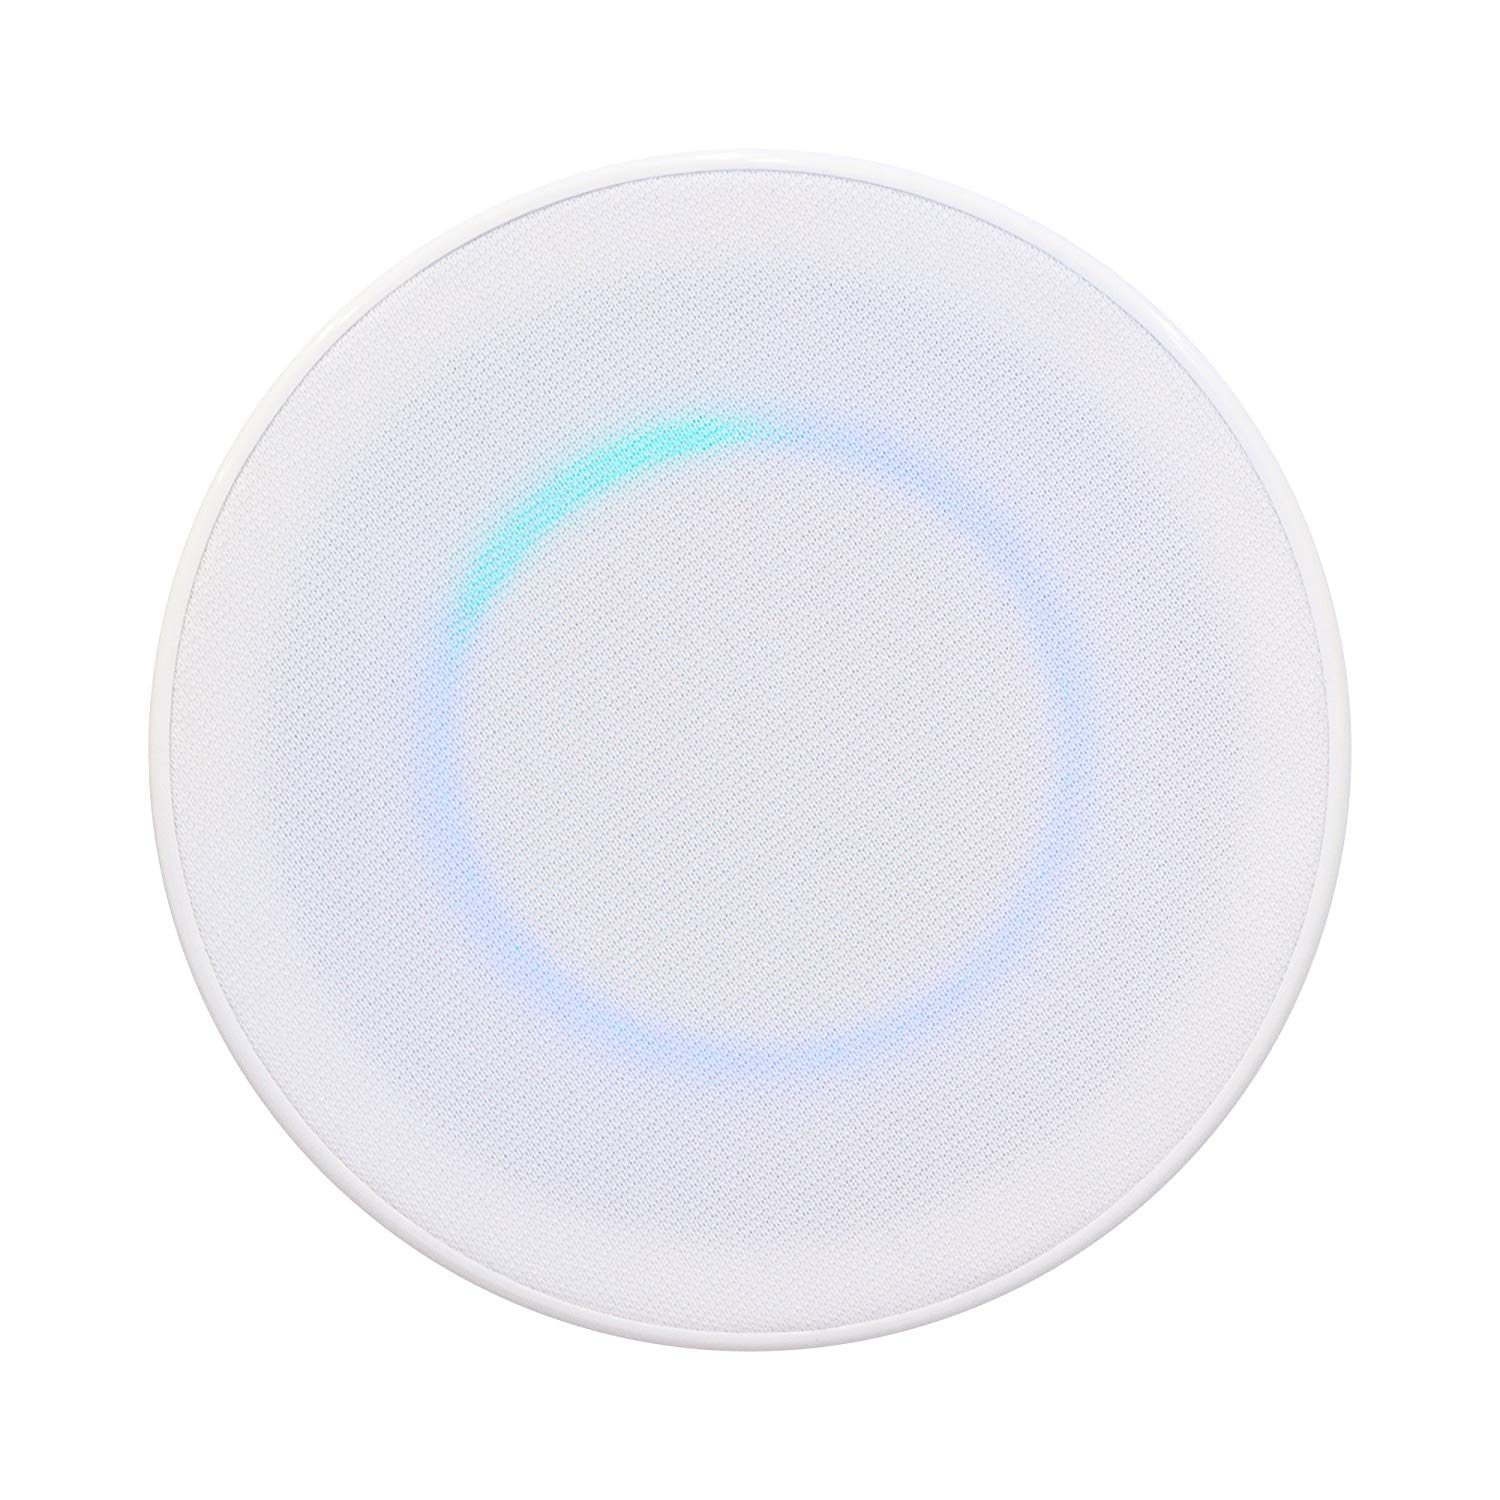 Echo Dot Installation Recess And Install Amazon Echo Dot In Wall Or Ceiling Flush Mount